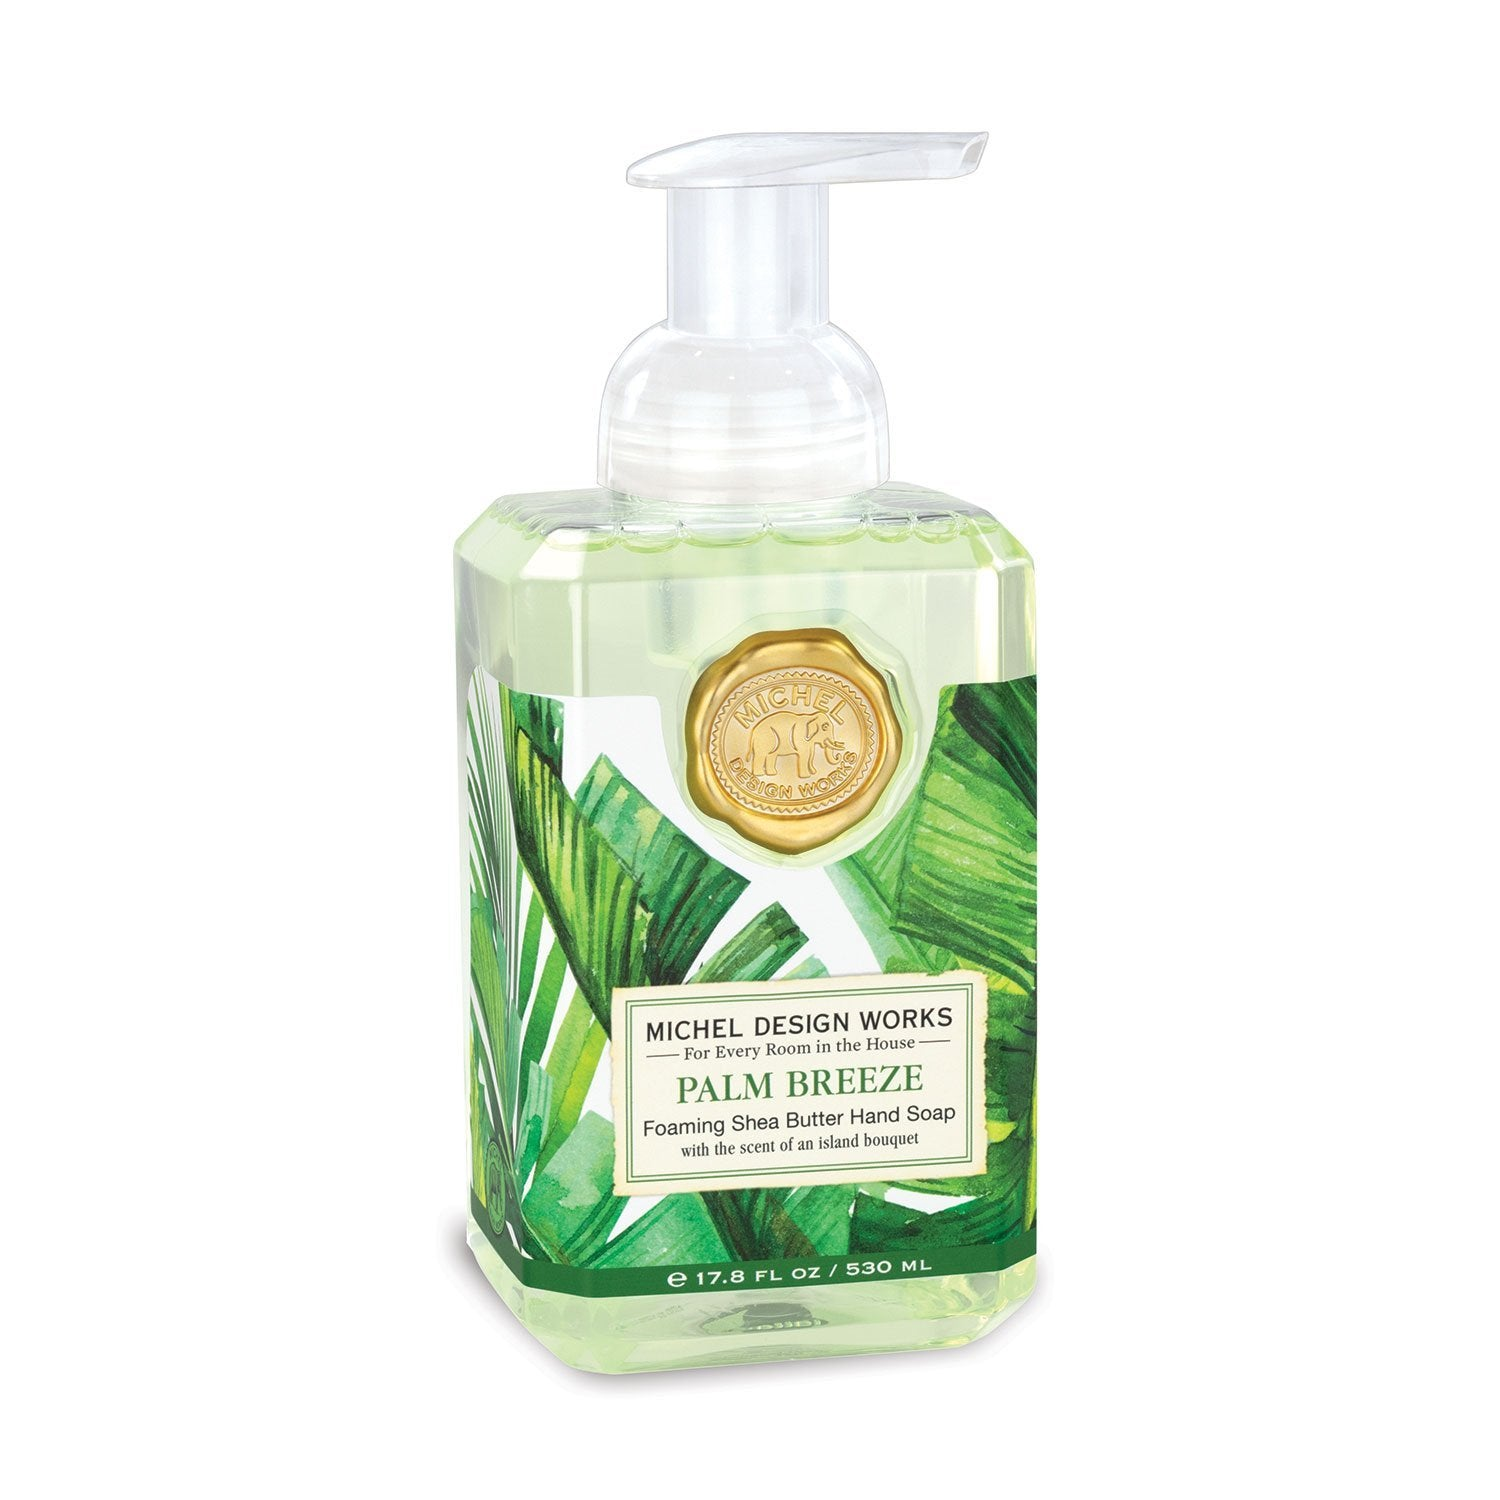 PALM BREEZE FOAMING HAND SOAP FOA336 - Molly's! A Chic and Unique Boutique